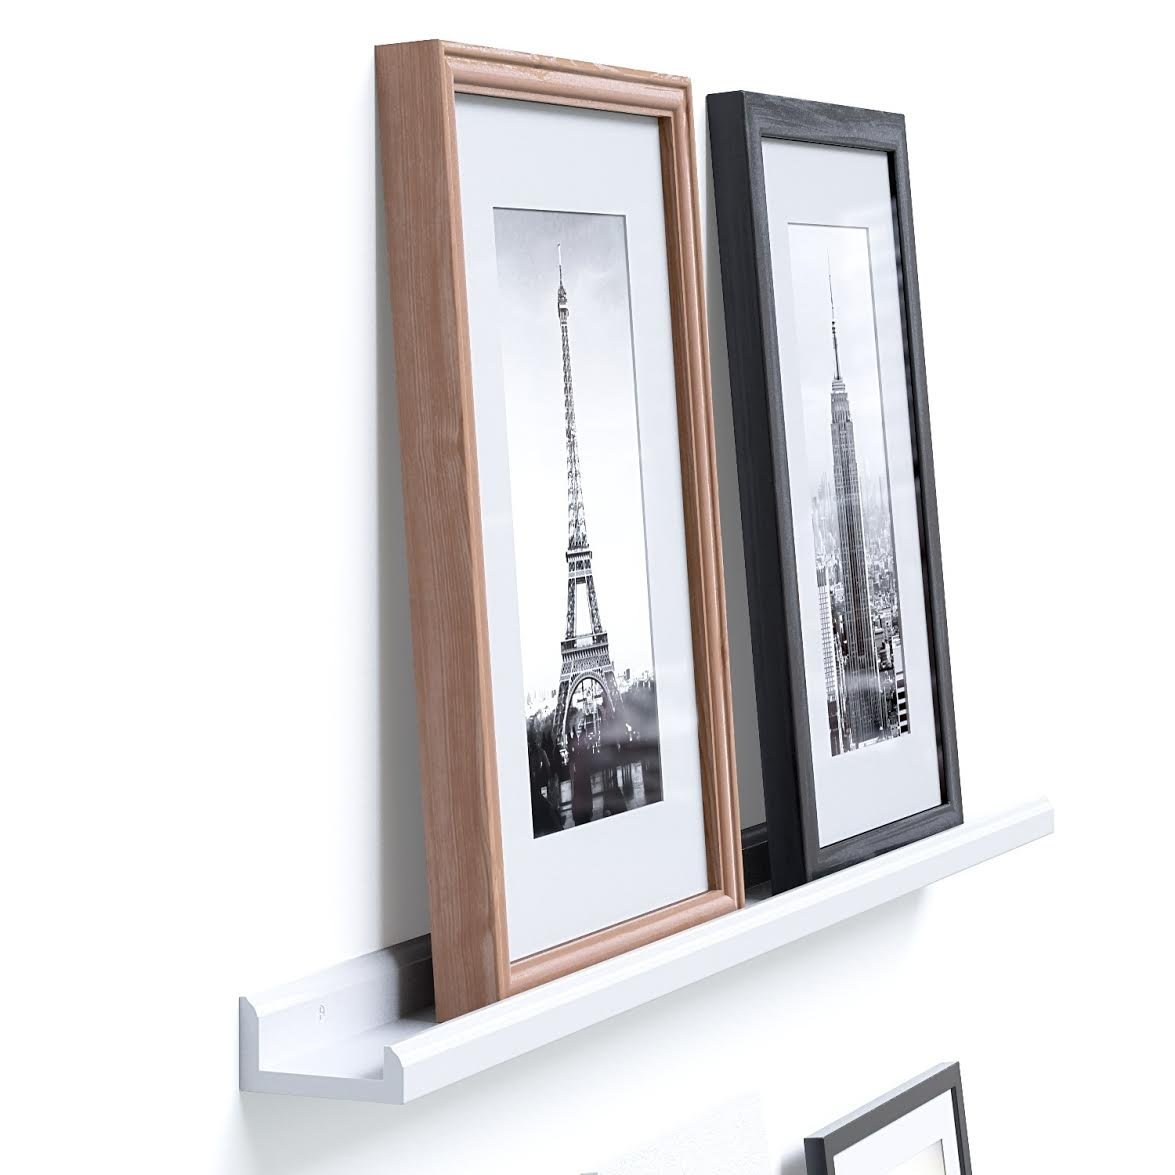 Amazon wallniture contemporary floating wall shelf ledge for amazon wallniture contemporary floating wall shelf ledge for picture frames book display 46 inch white home kitchen jeuxipadfo Gallery